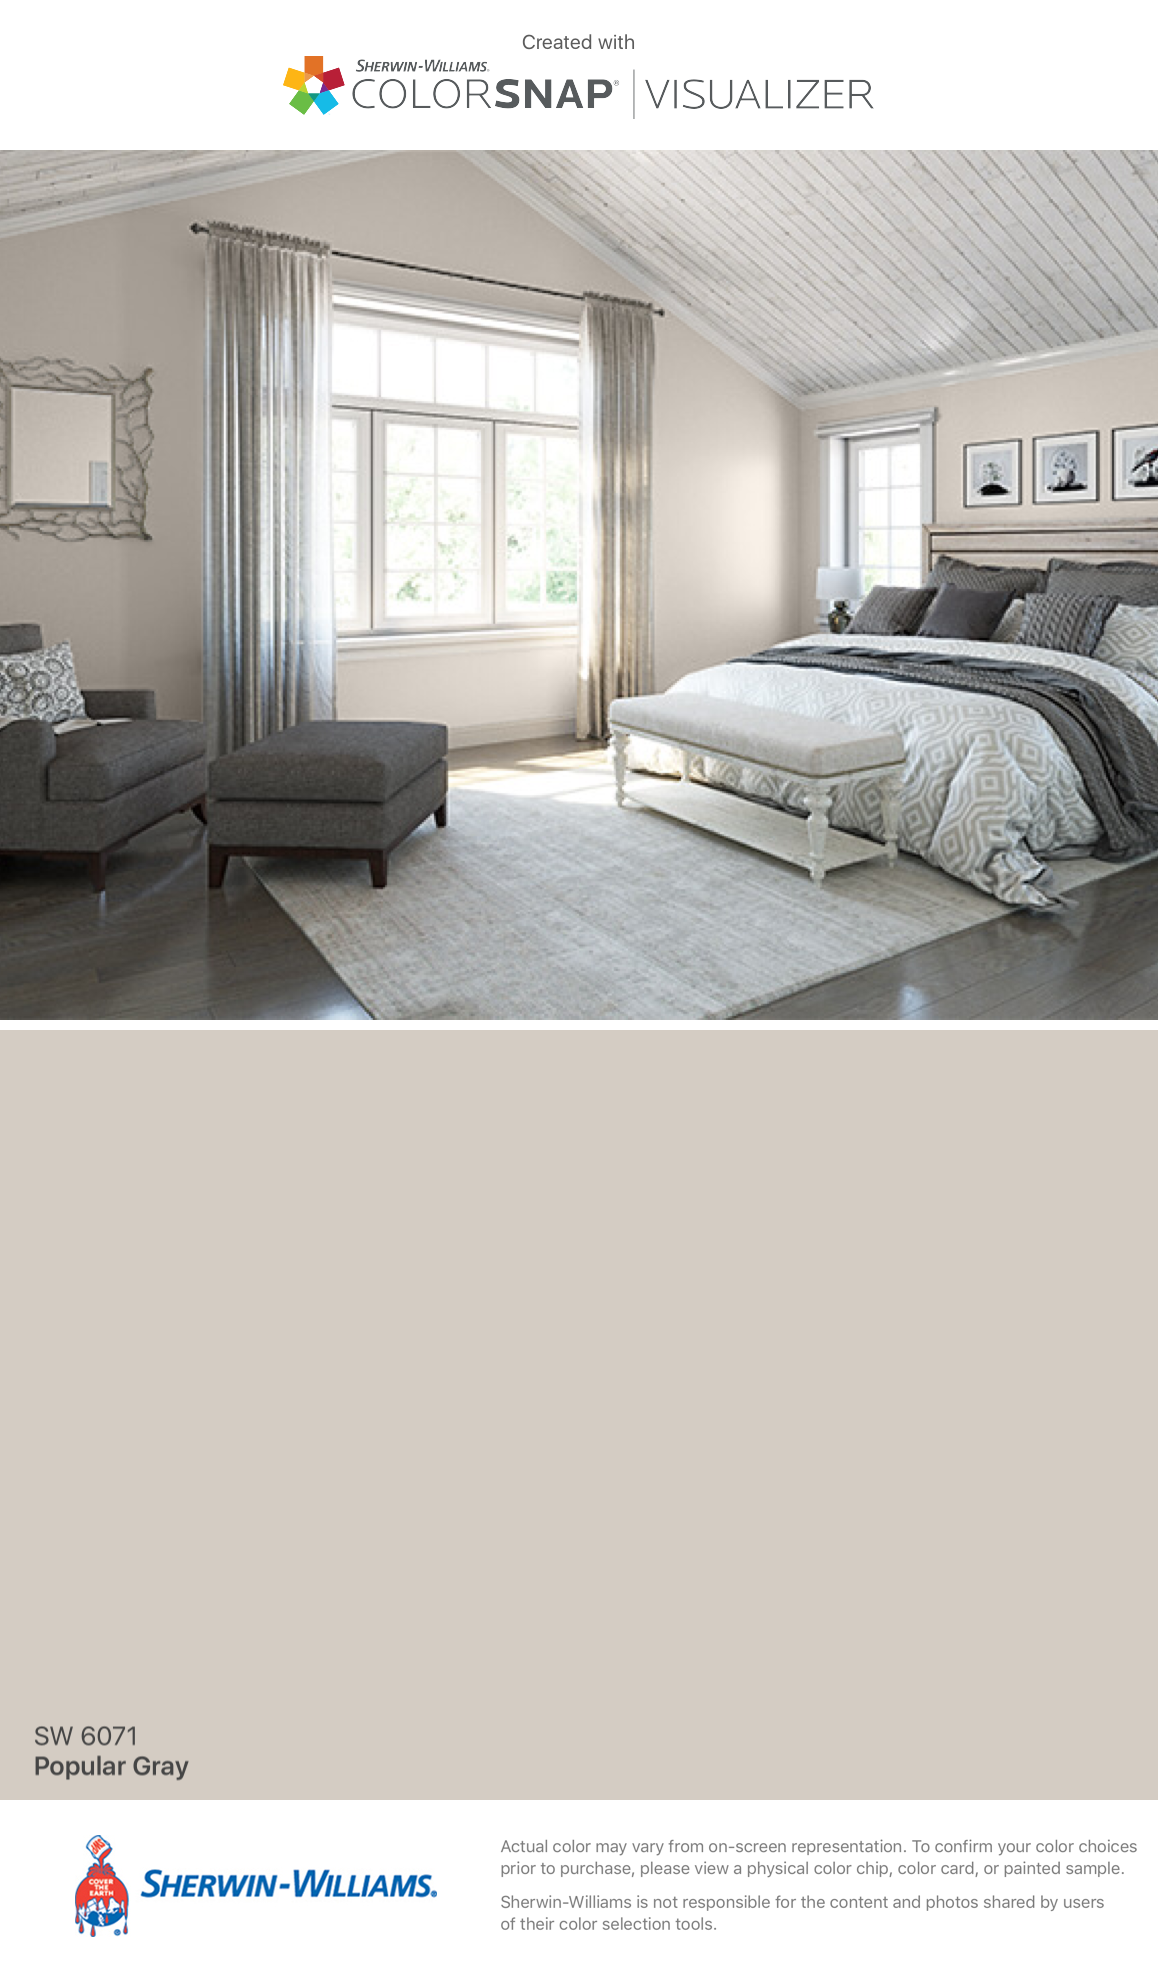 I Found This Color With Colorsnap Visualizer For Iphone By Sherwin Williams Popular Gray Sw 6071 Bedroom Colors Master Bedroom Paint Bedroom Paint Colors